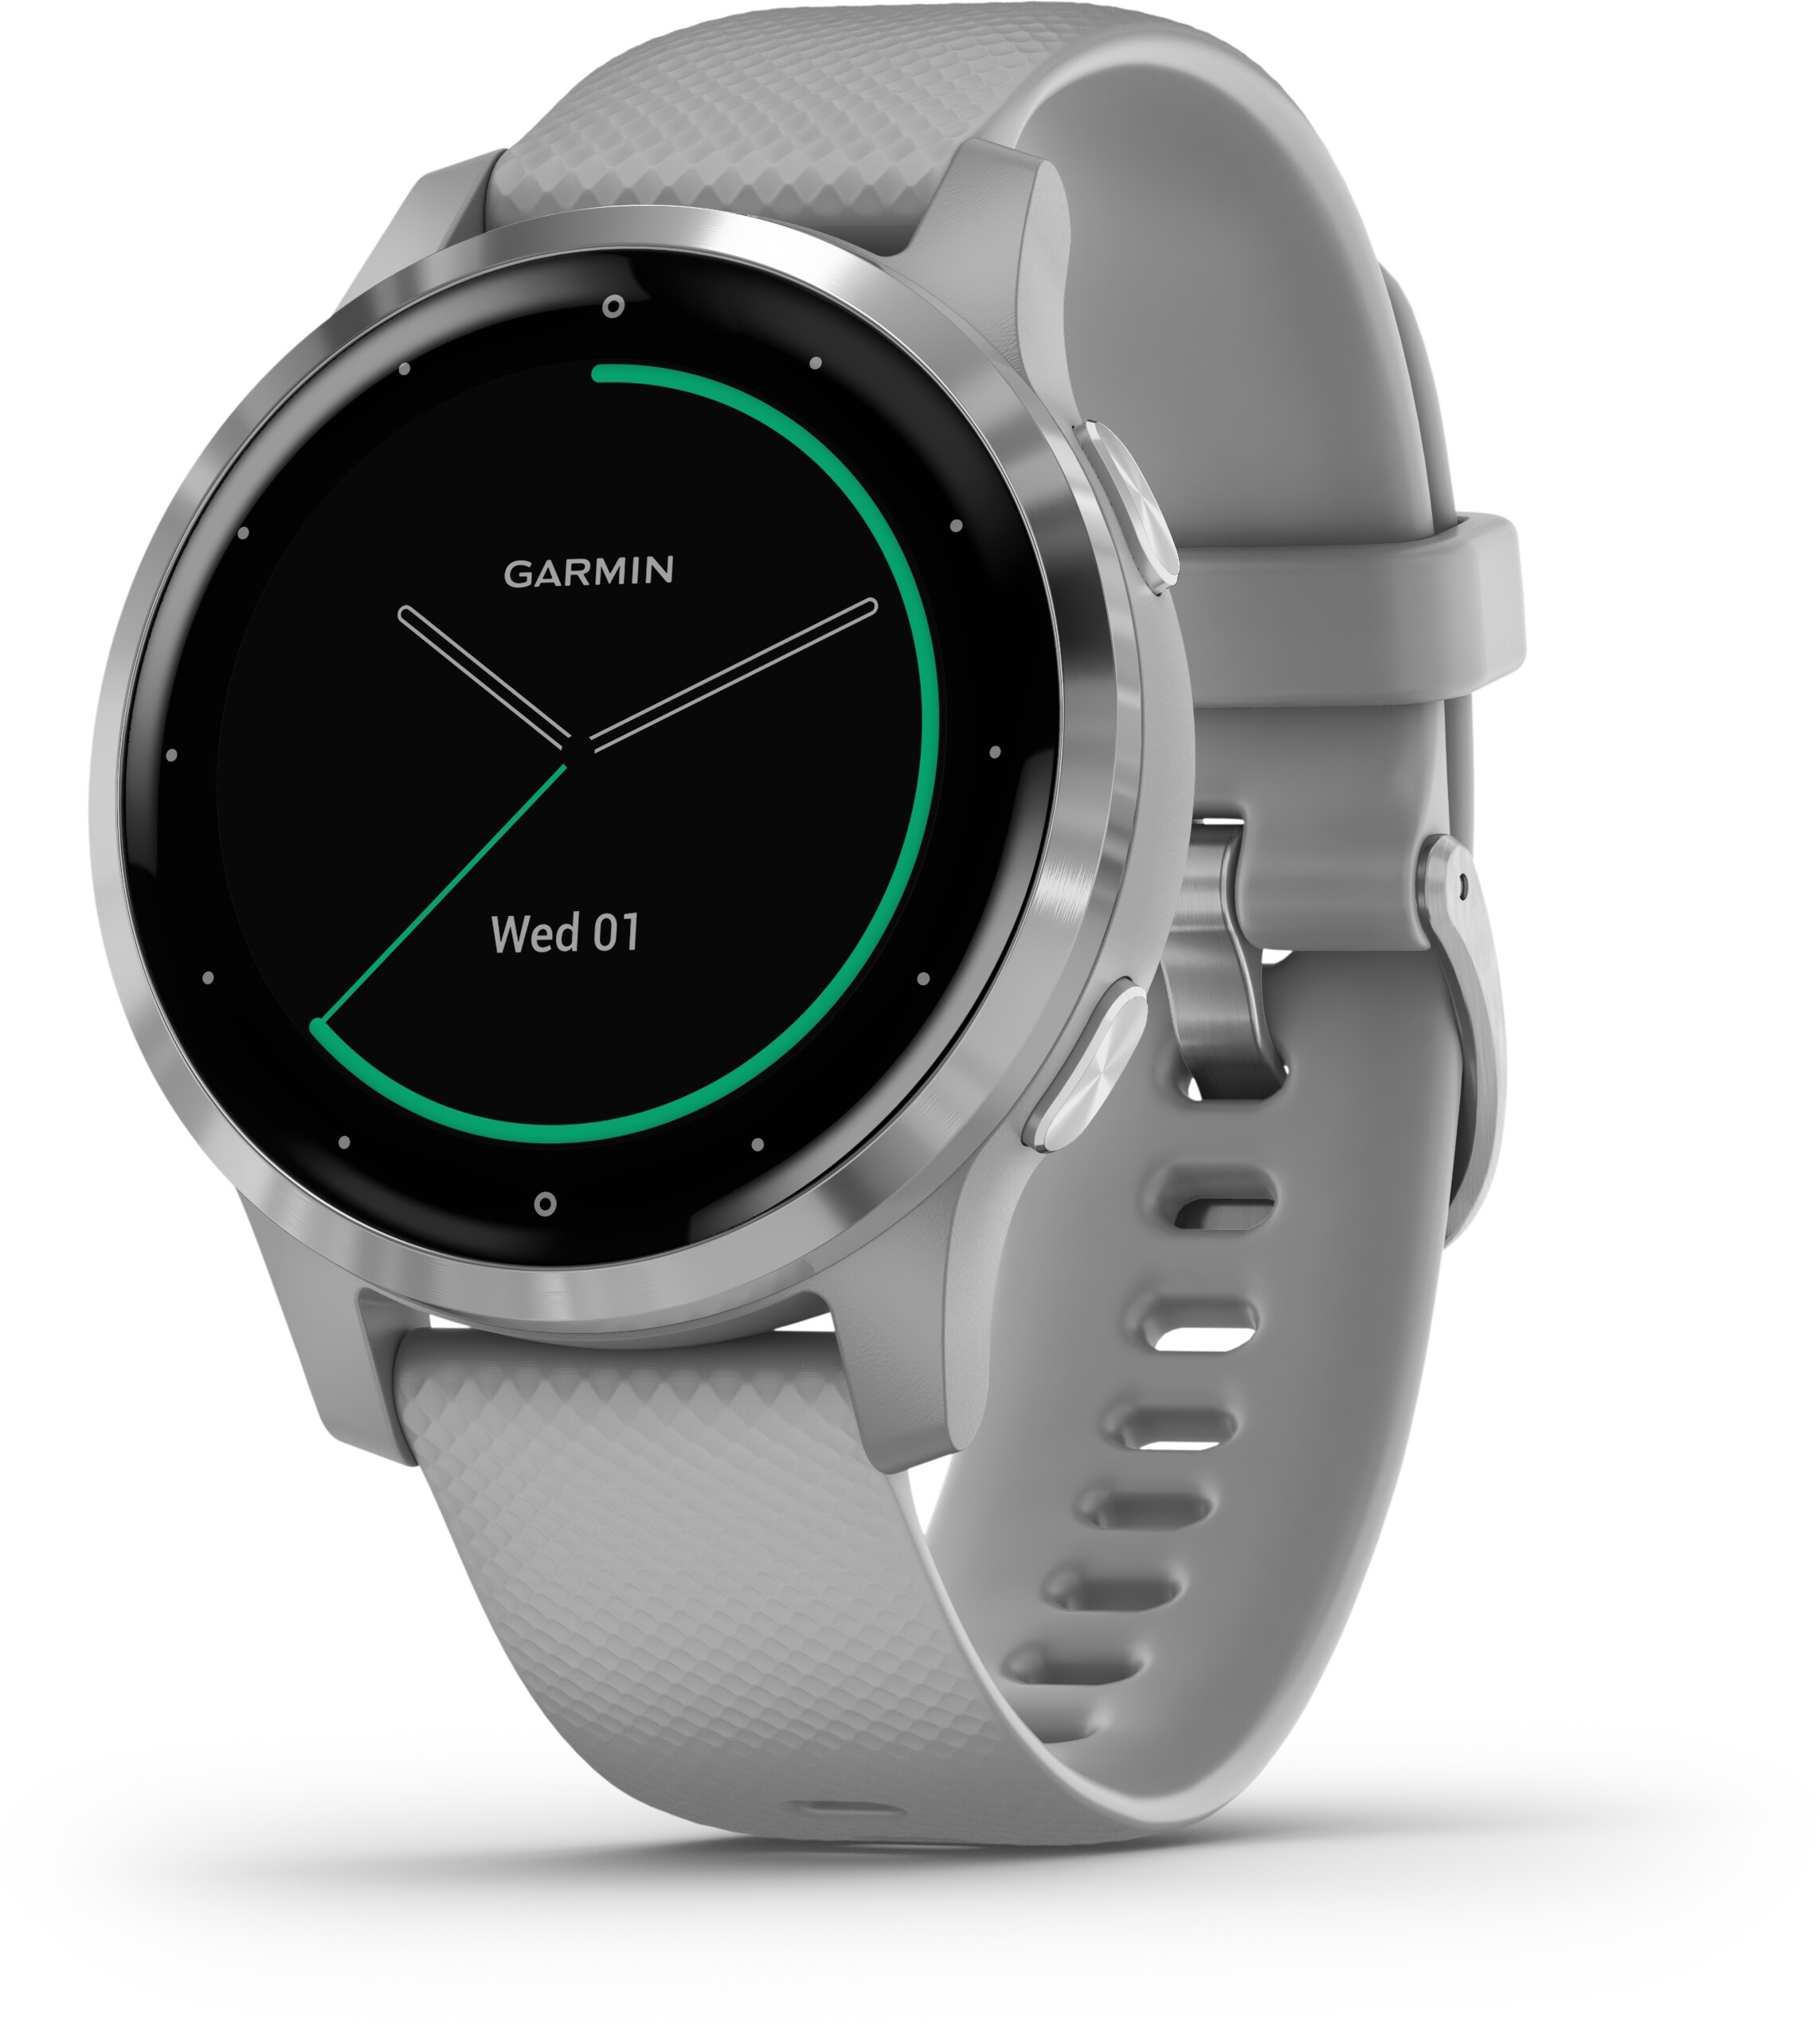 Offerta Garmin Vivo Active 4S su TrovaUsati.it